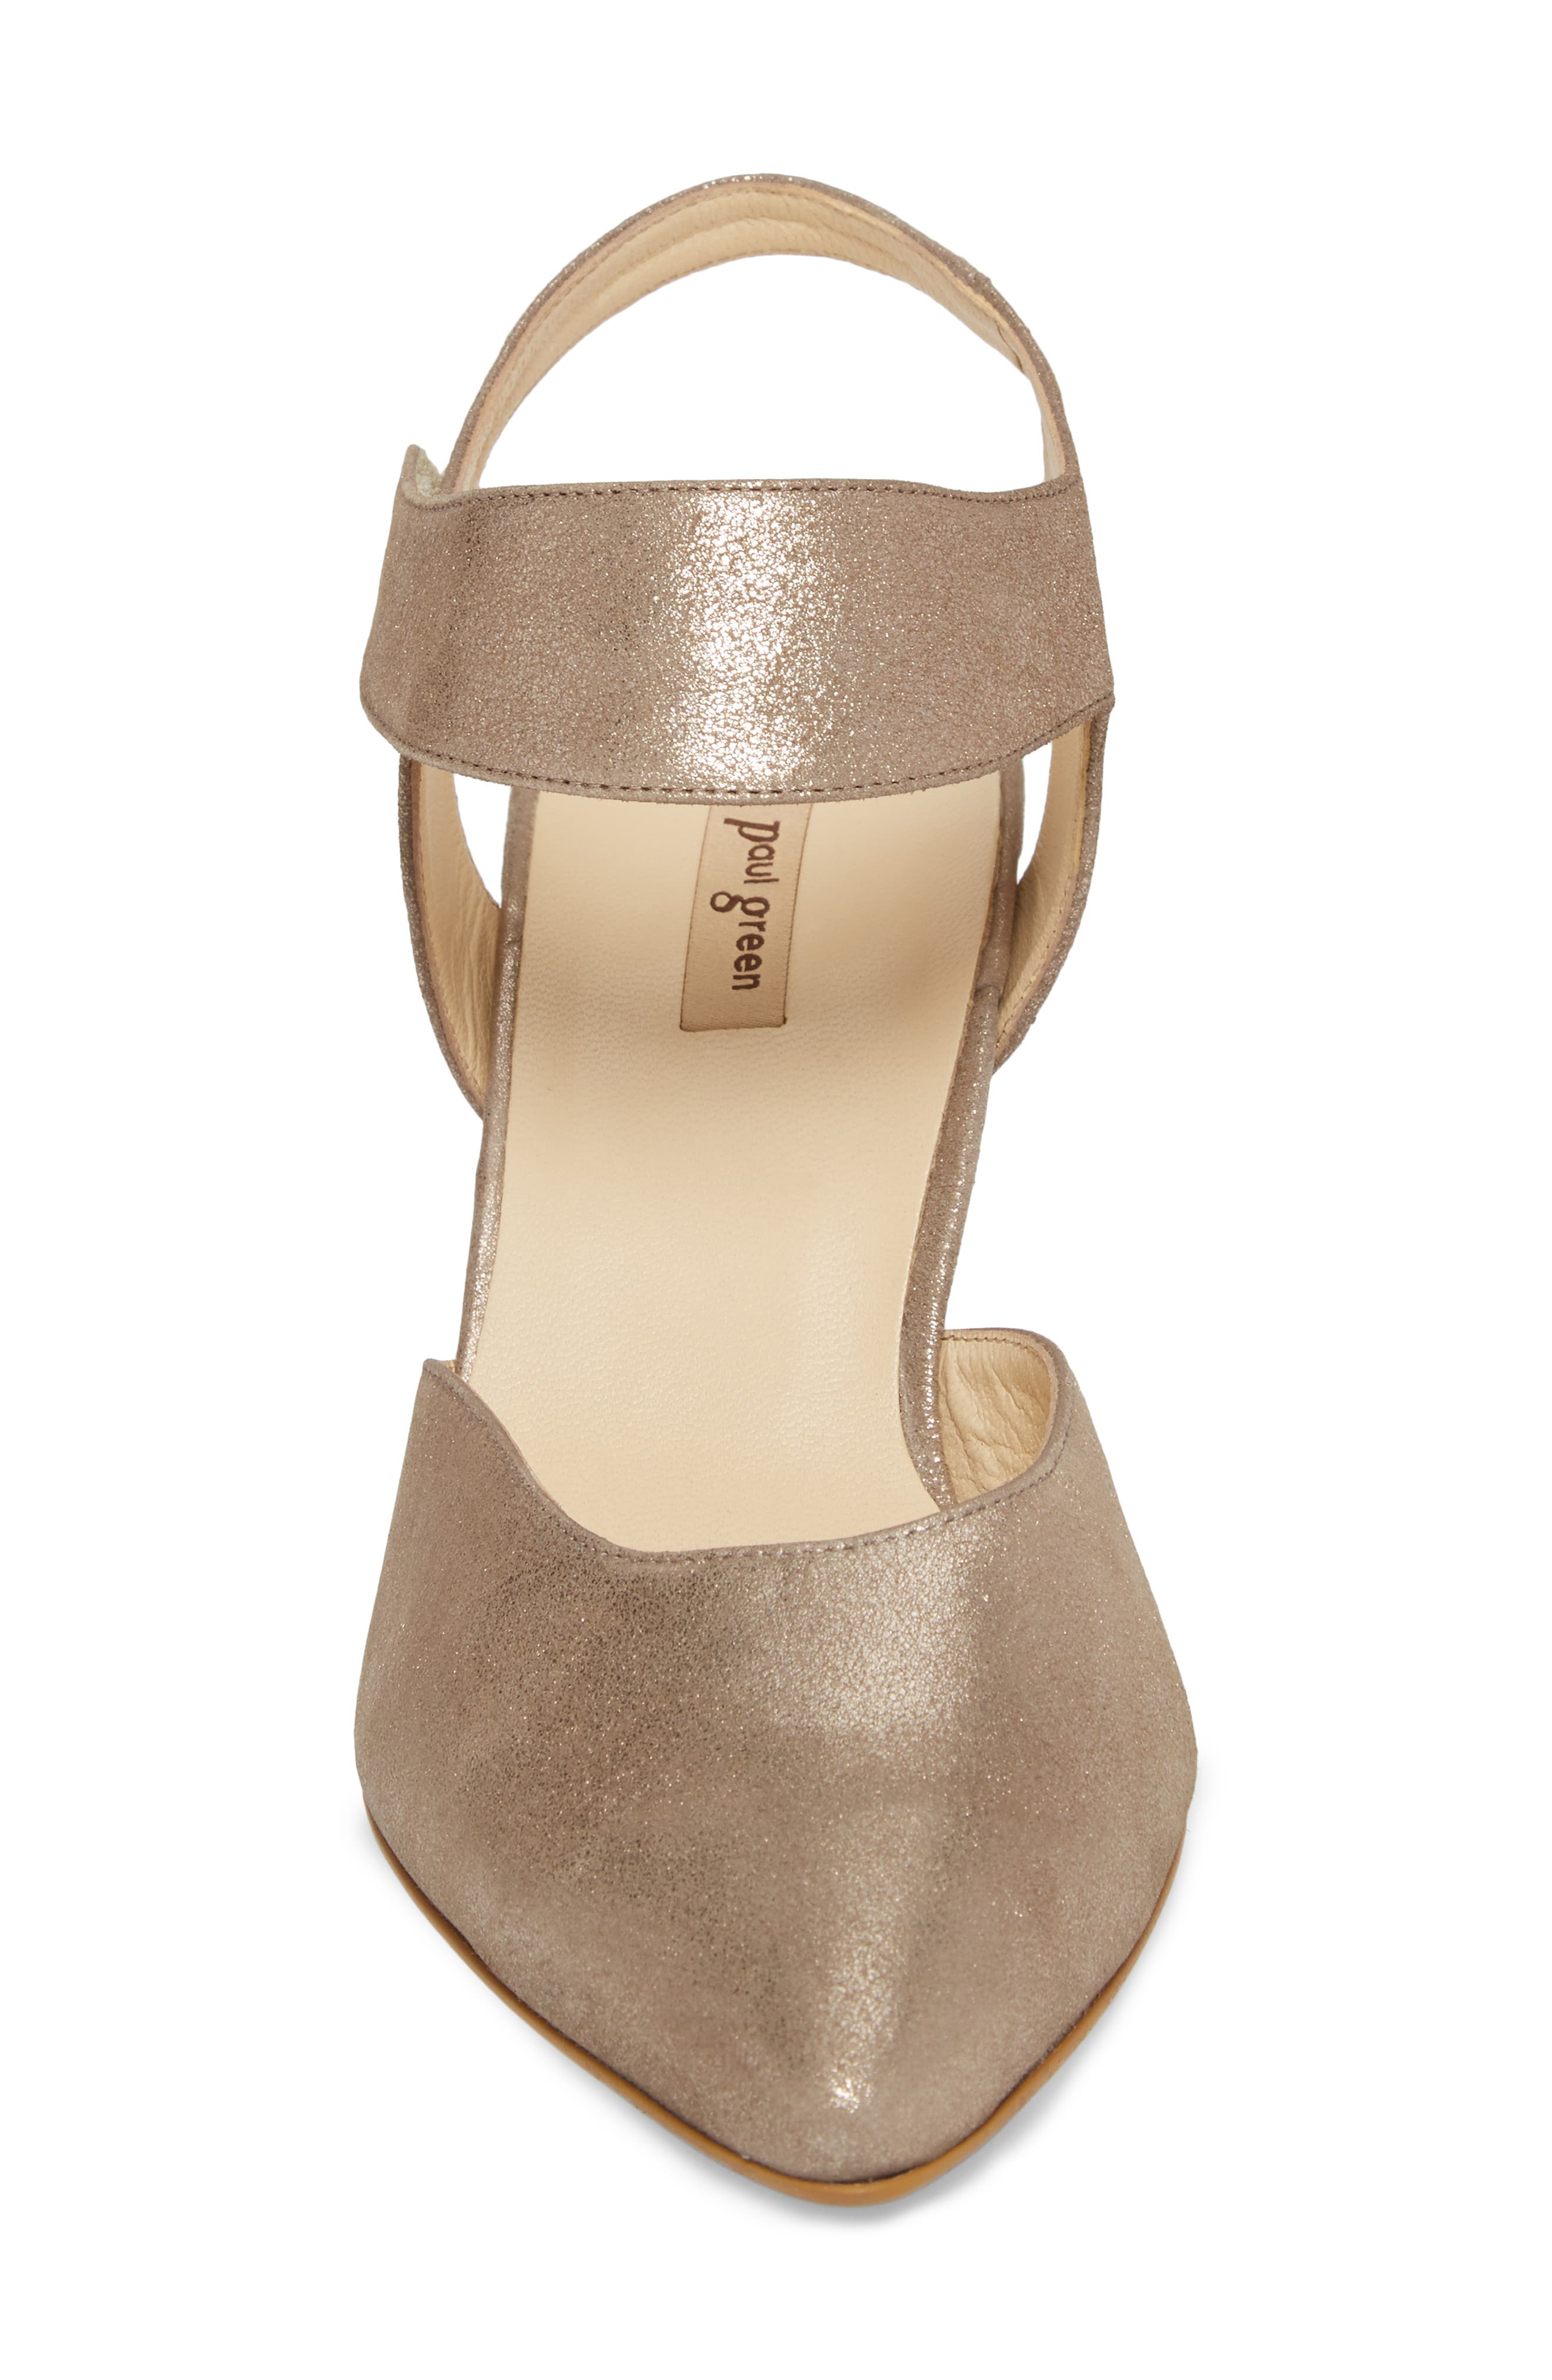 Nicolette Pointy Toe Pump,                             Alternate thumbnail 4, color,                             Champagne Metallic